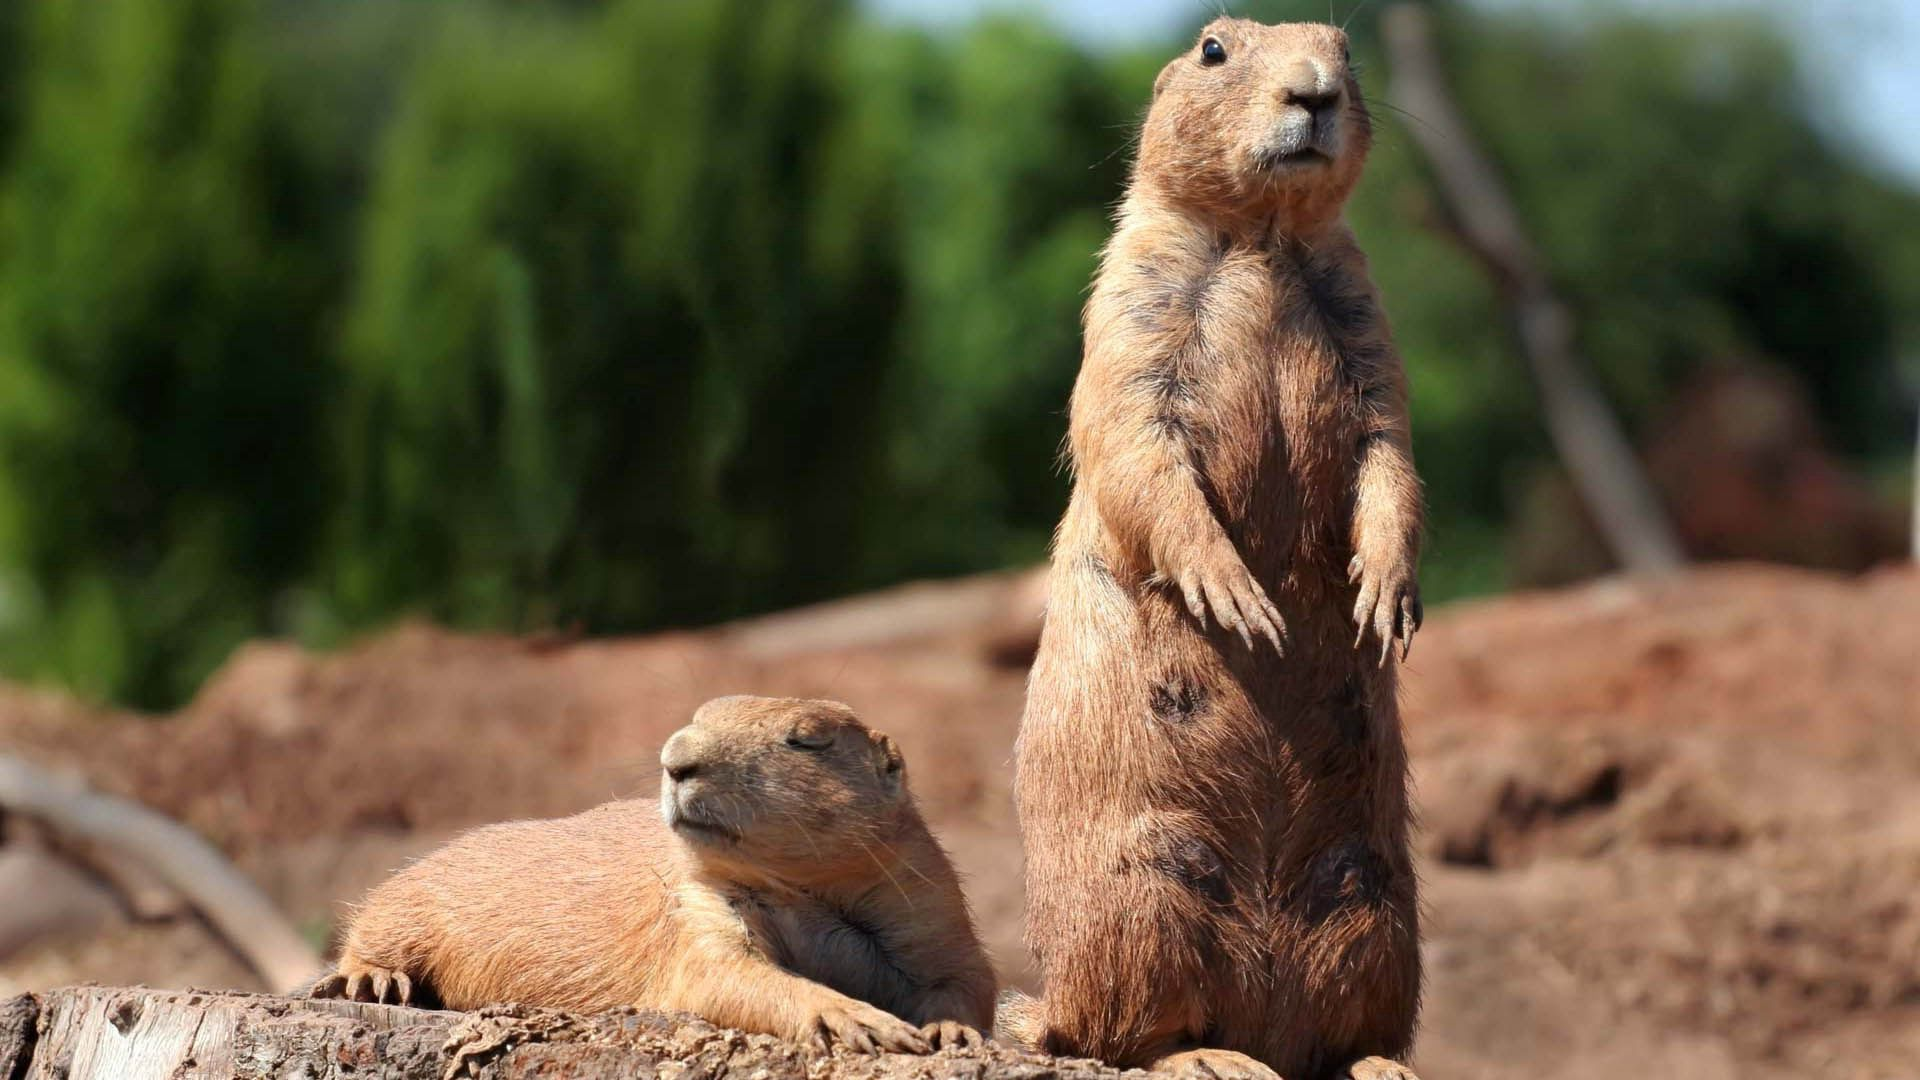 97290 download wallpaper Animals, Marmot, Forest, To Stand, Stand, Danger, Rodent screensavers and pictures for free